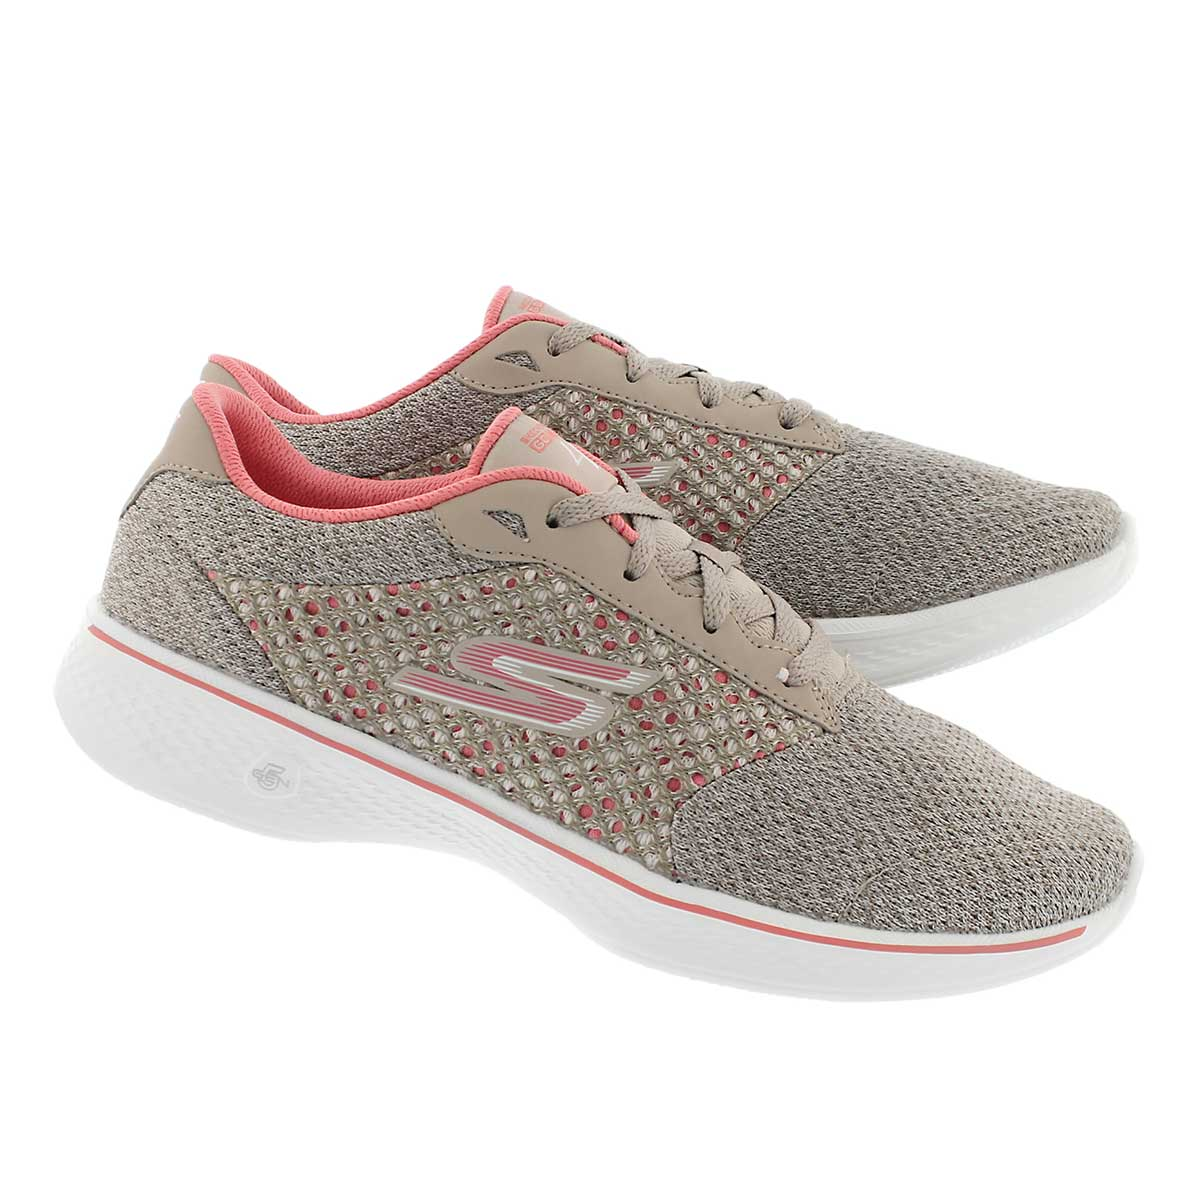 skechers walking shoes for women